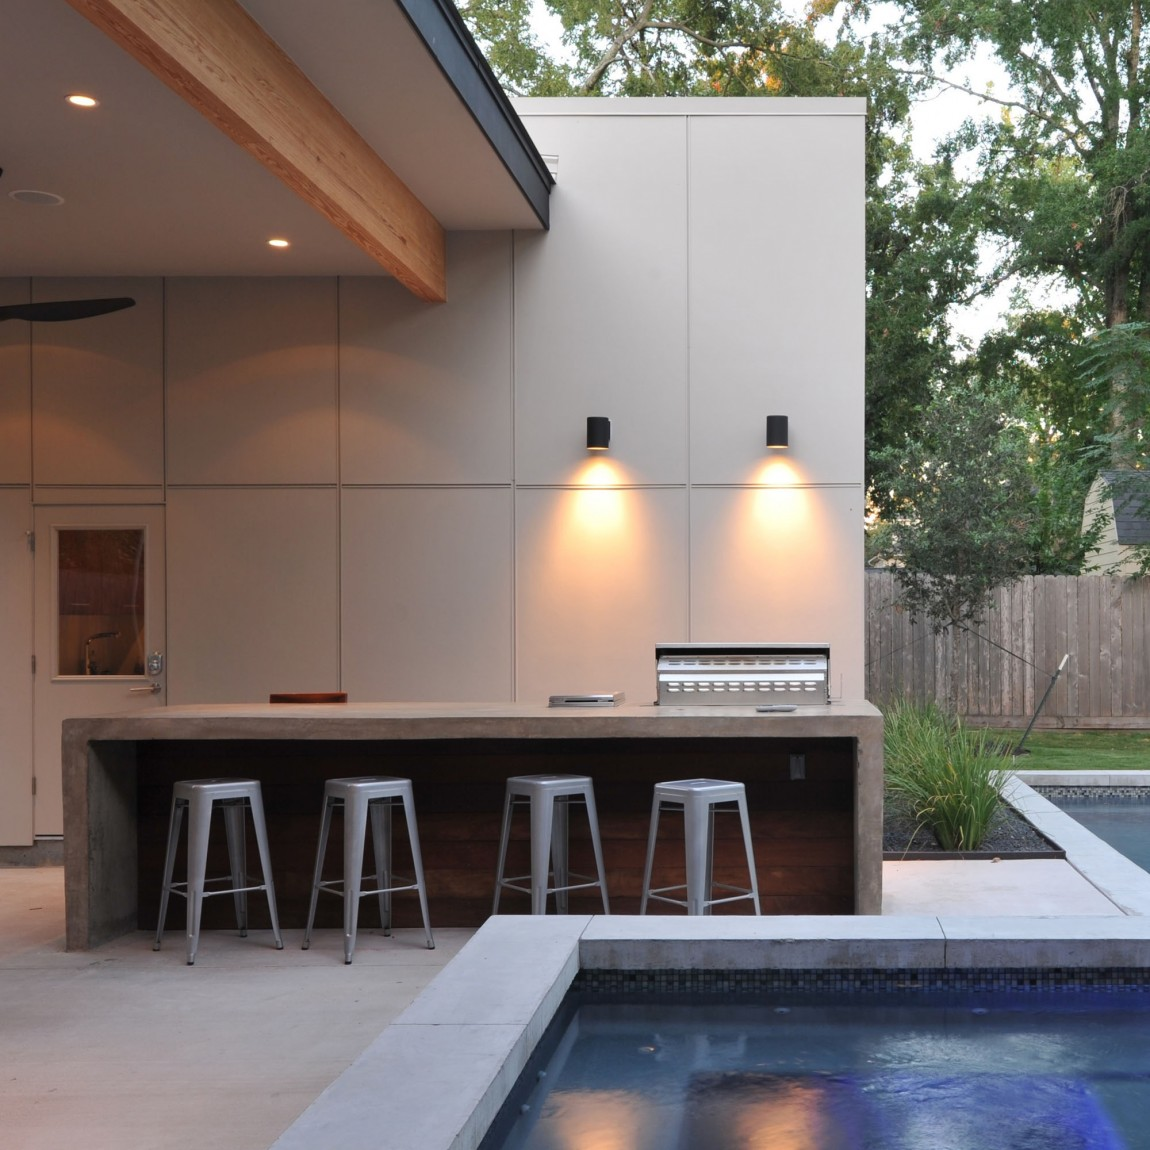 40 Beautiful Outdoor Kitchen Designs: A Great Way To Enjoy A Beautiful Day